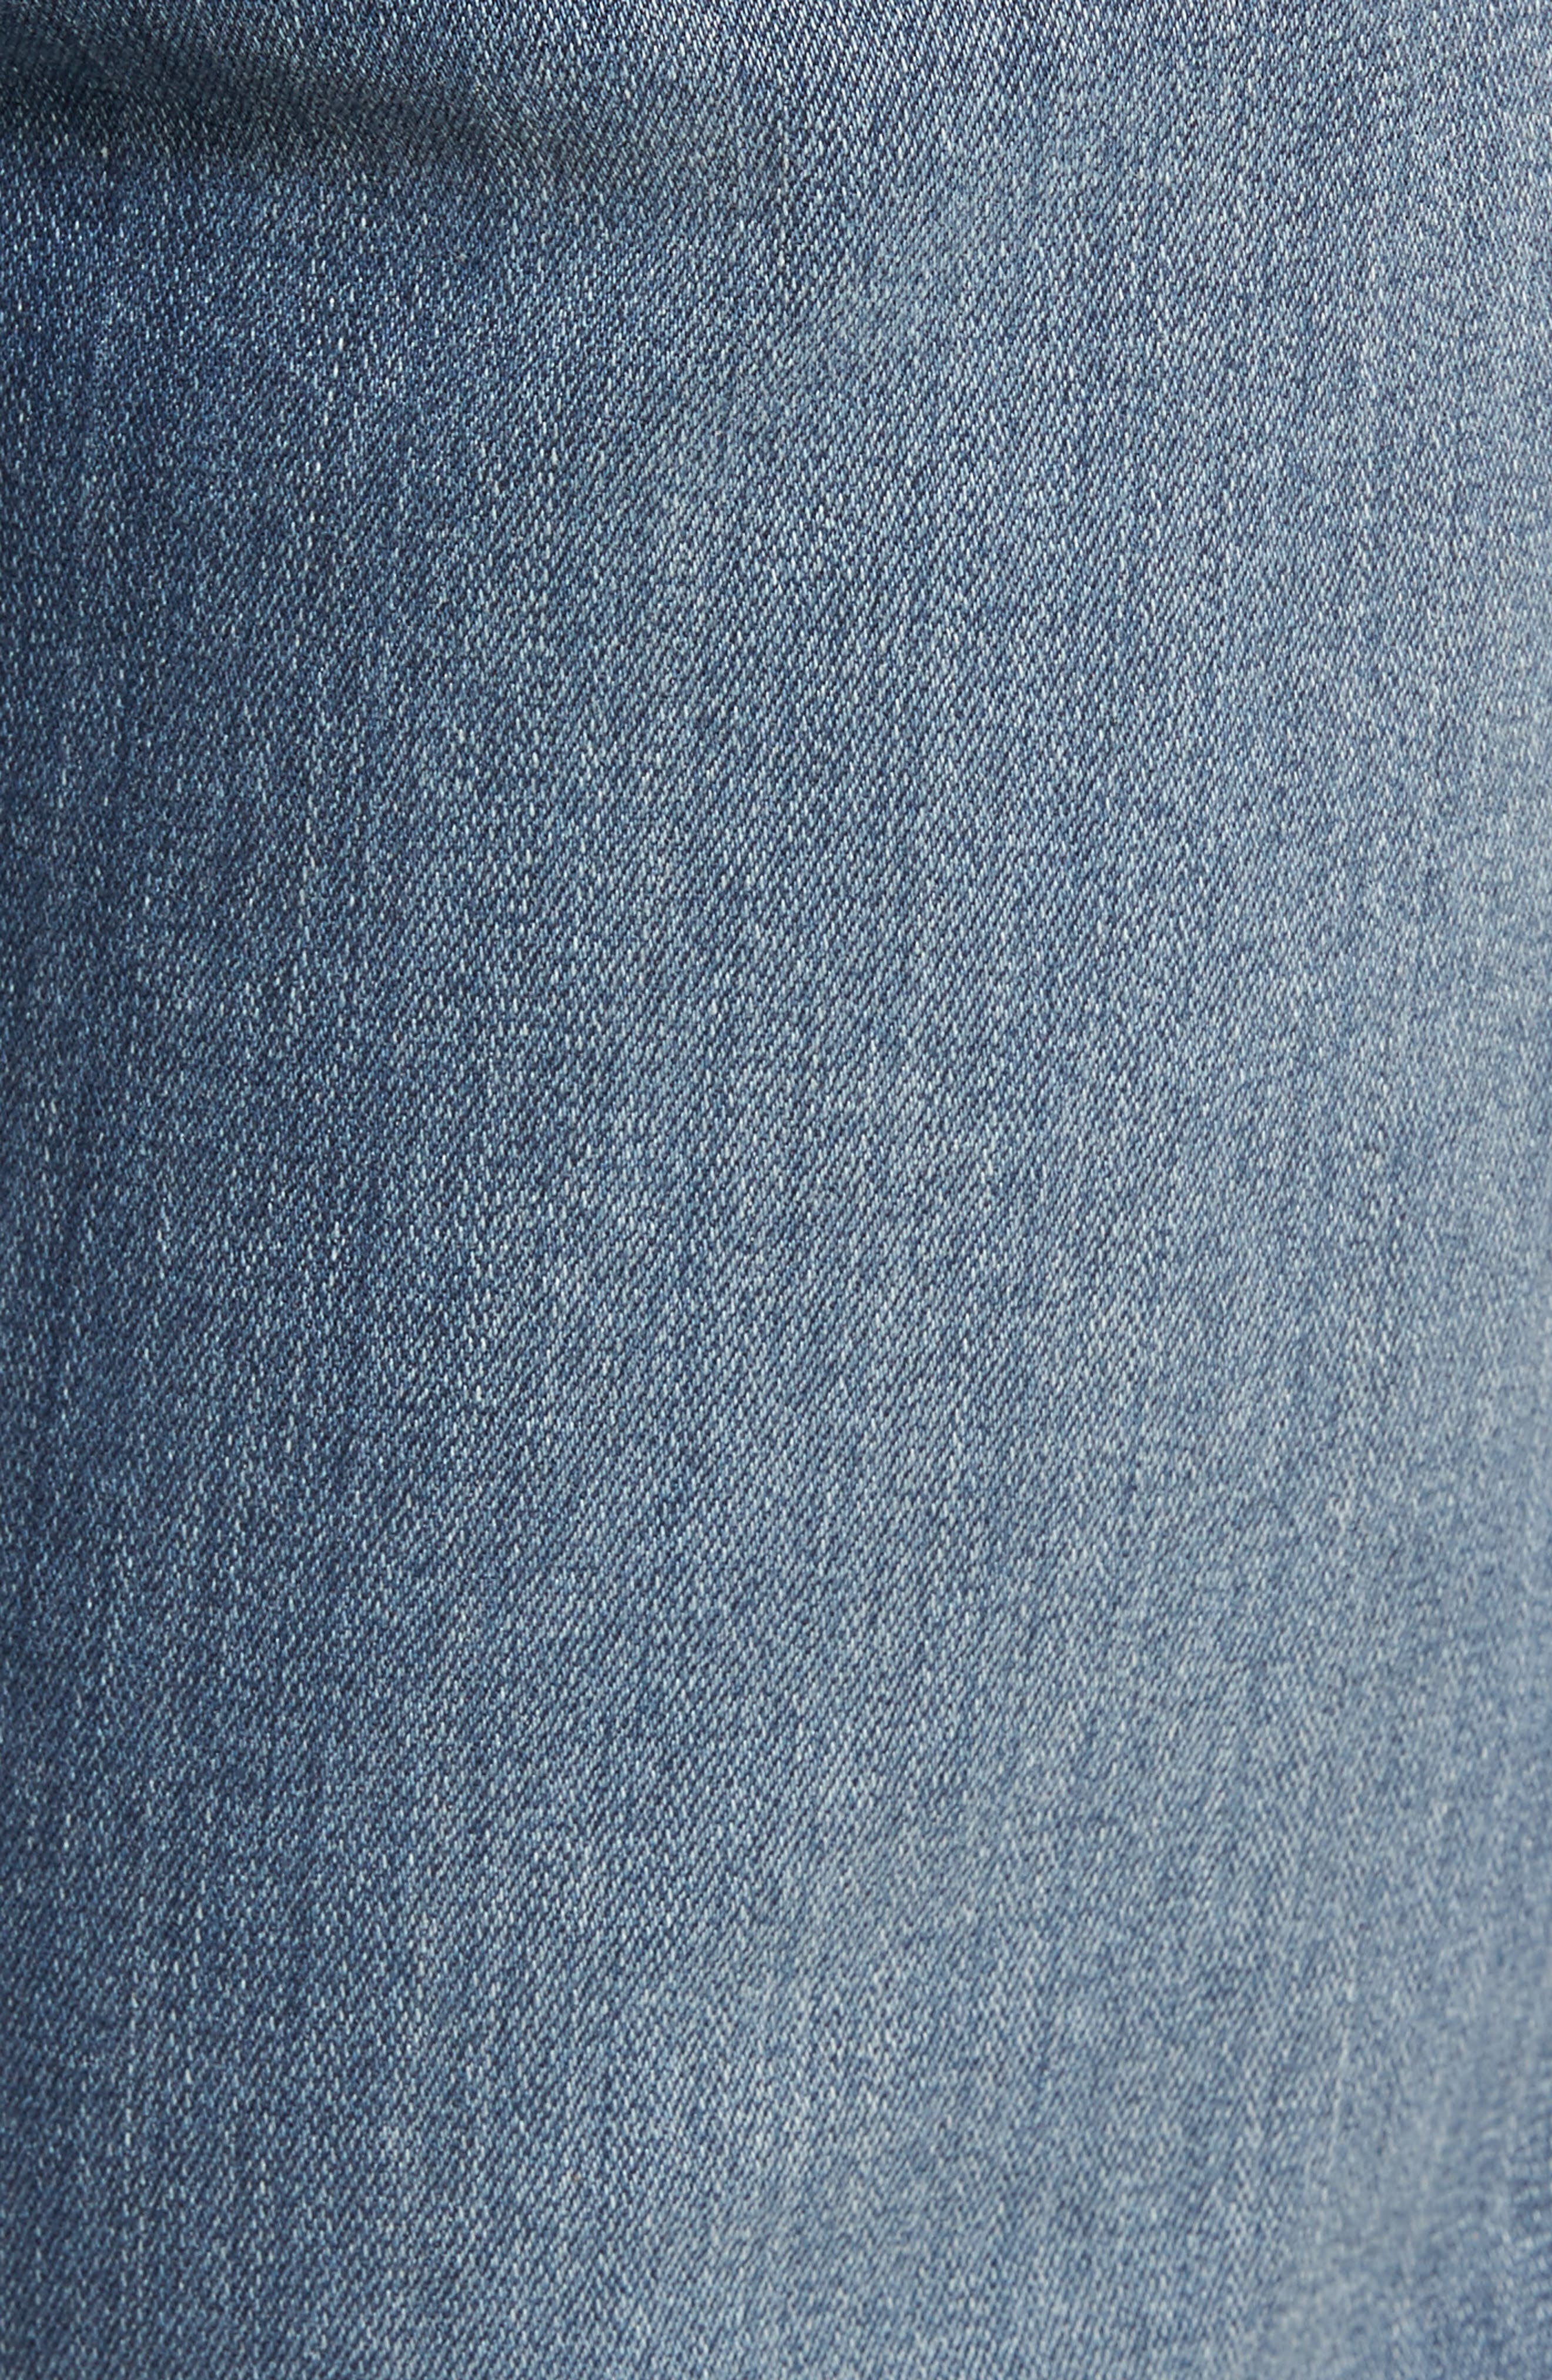 Normandie Straight Fit Jeans,                             Alternate thumbnail 5, color,                             ALMONT